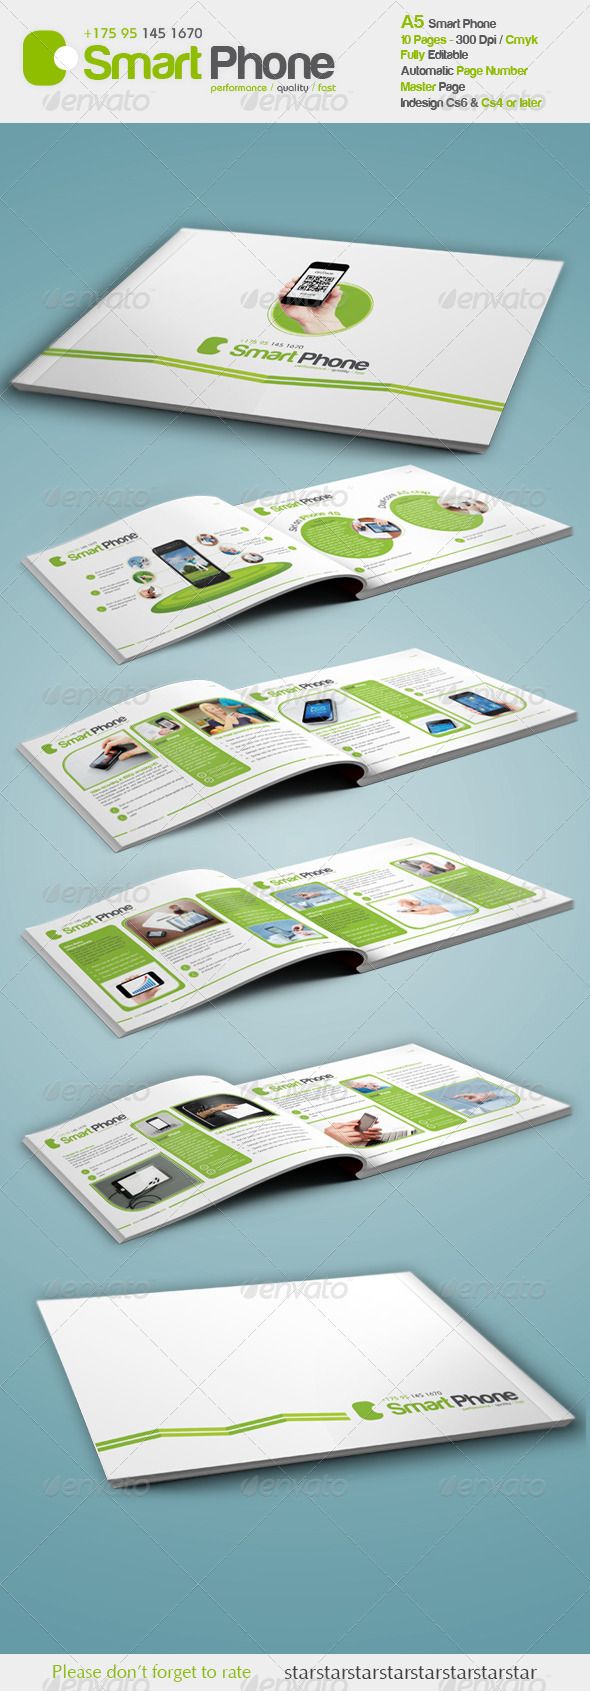 Smart Phone A5  - Brochures Print Templates